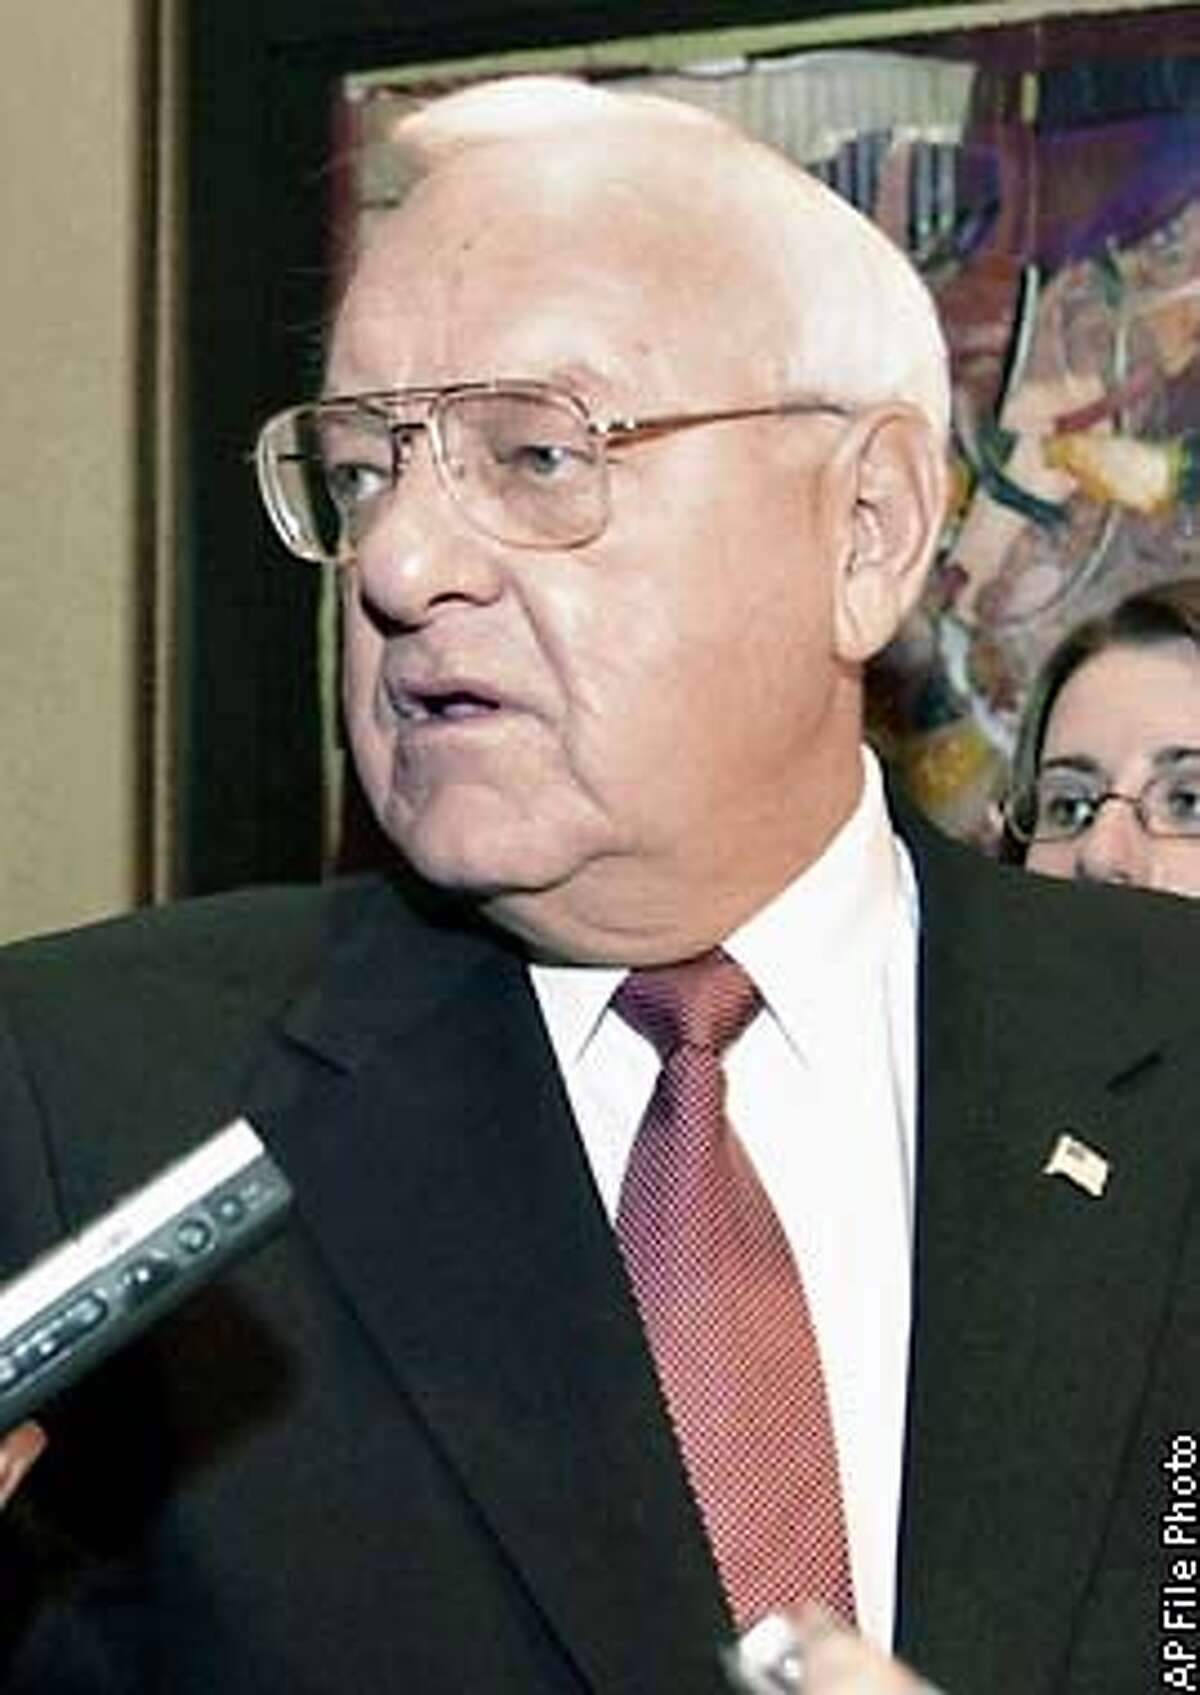 FILE - Illinois Gov. George Ryan is seen at a Republican party news conference, March 20, 2002, in Chicago. On Tuesday, April 2, 2002, two of Ryan's former top aides were indicted on federal charges that alleged his campaign committee was a corrupt enterprise that illegally used state workers for political purposes. It is the biggest indictment to come out of the federal government's four-year investigation that began as a probe of the selling of driver's license for bribes when Ryan was secretary of state. (AP Photo/Charles Bennett, File)